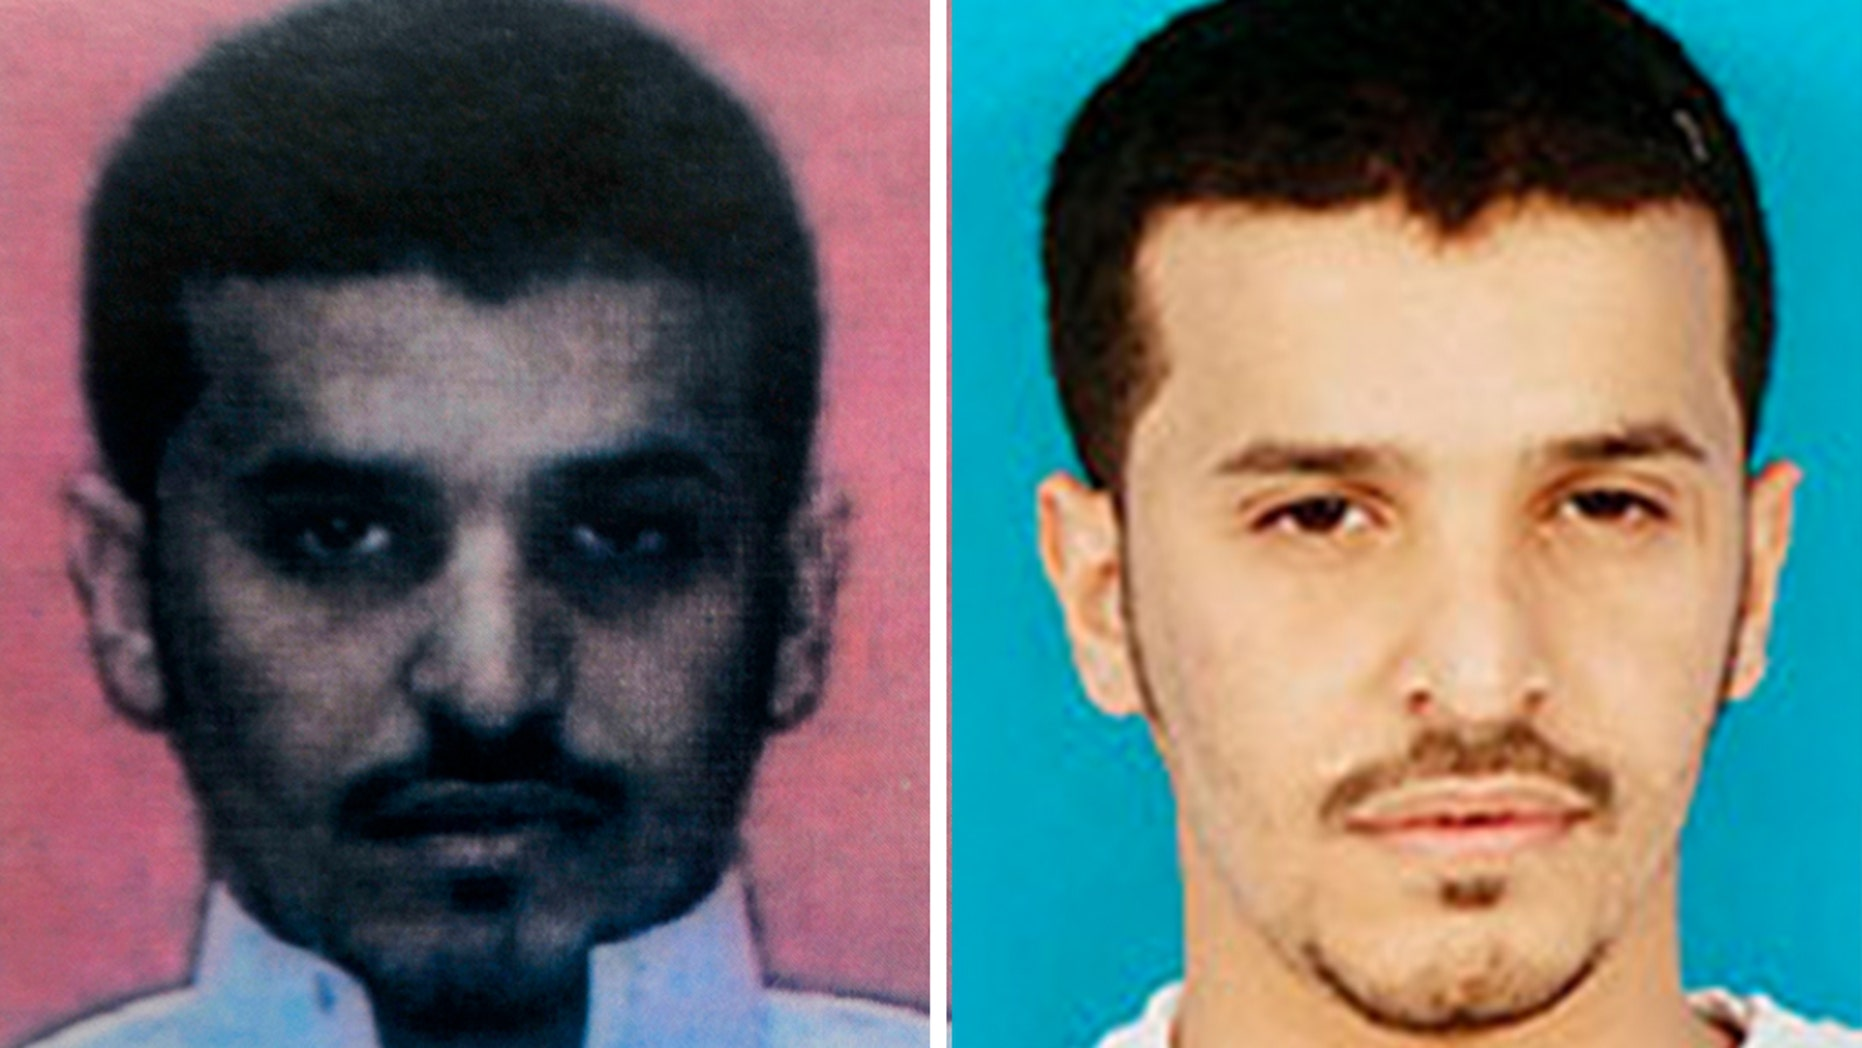 Ibrahim al-Asiri was one of the most wanted Al Qaeda suspects by the US